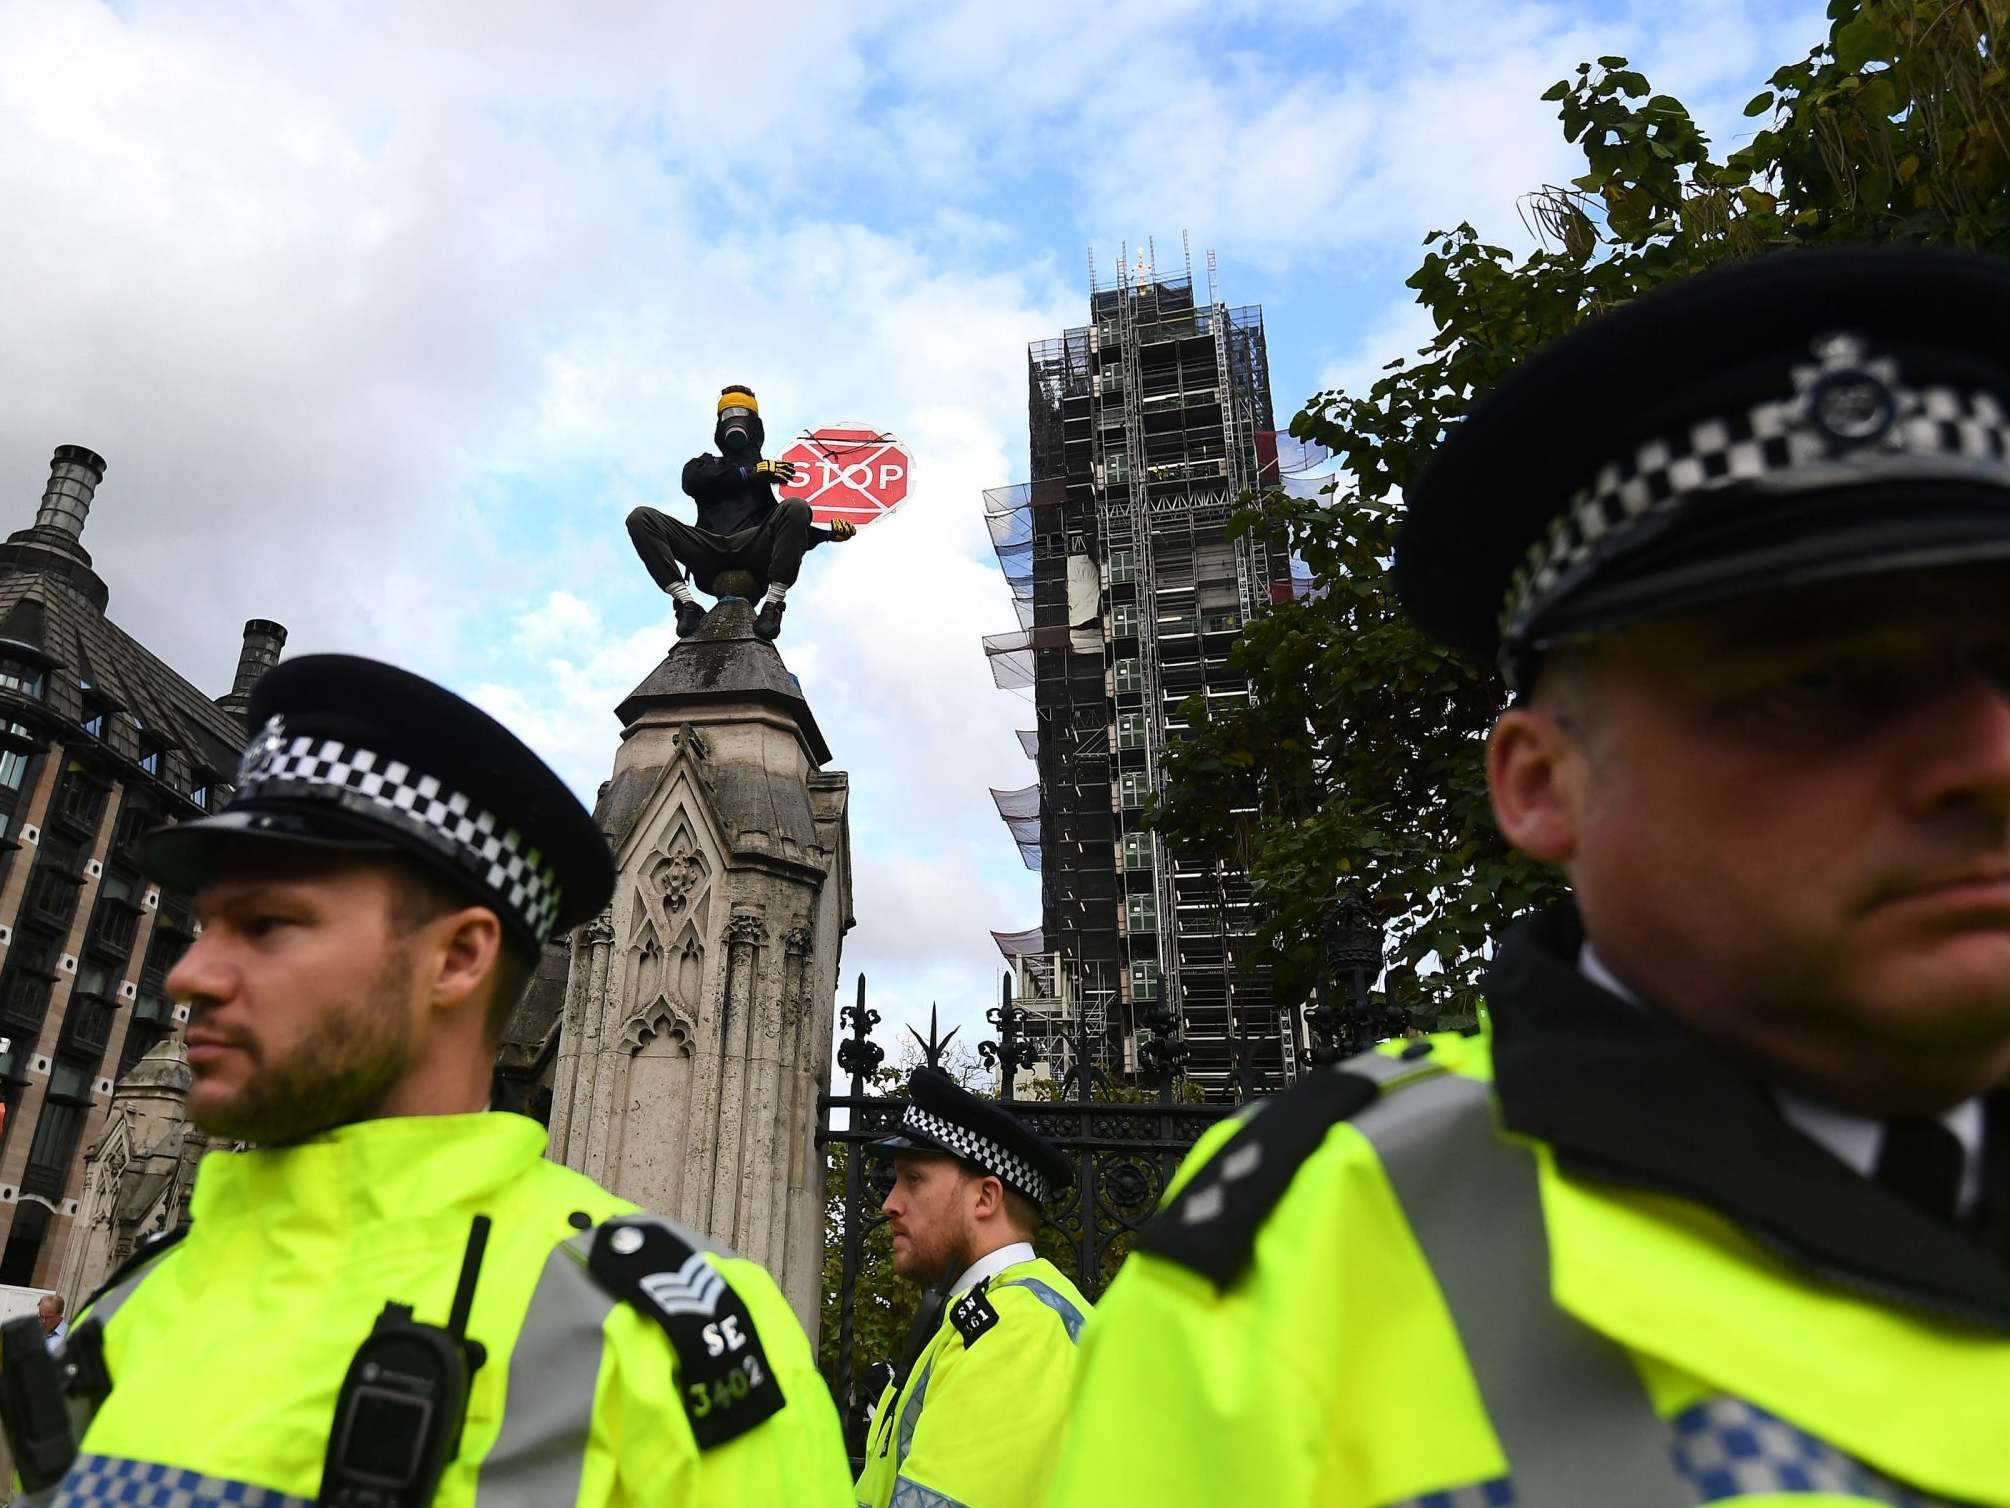 Extinction Rebellion: Protesters defy London ban, scaling buildings and blocking roads